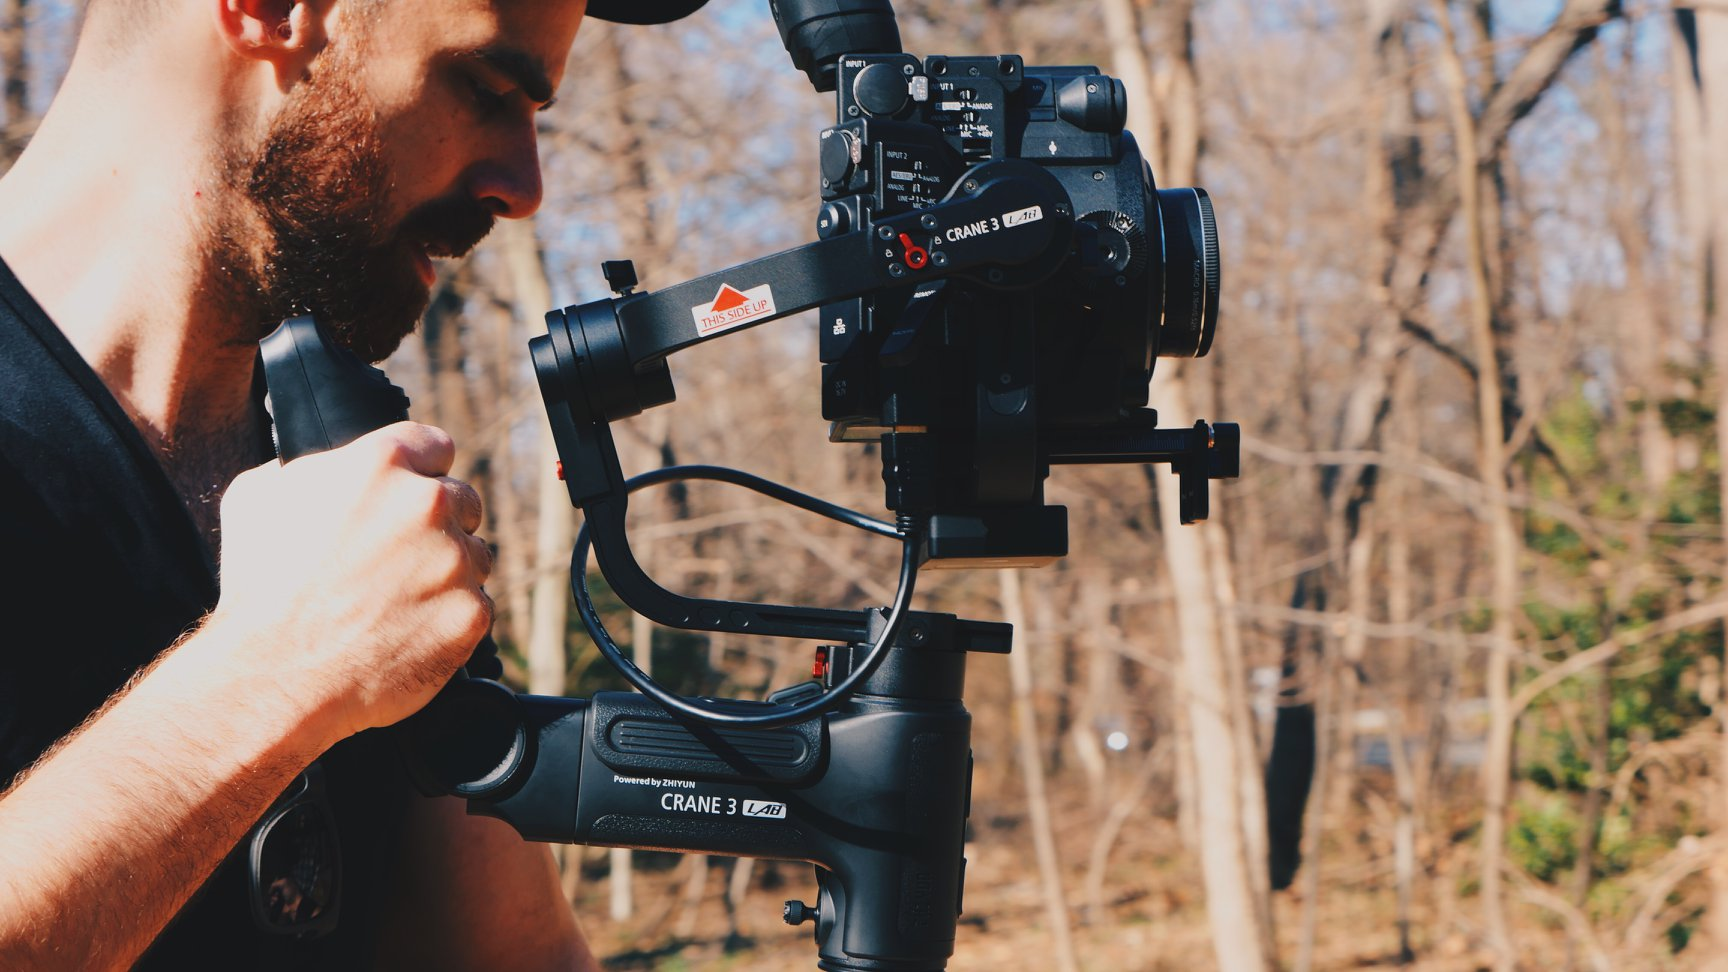 Shooting in the forest #Zhiyun #Crane3LAB